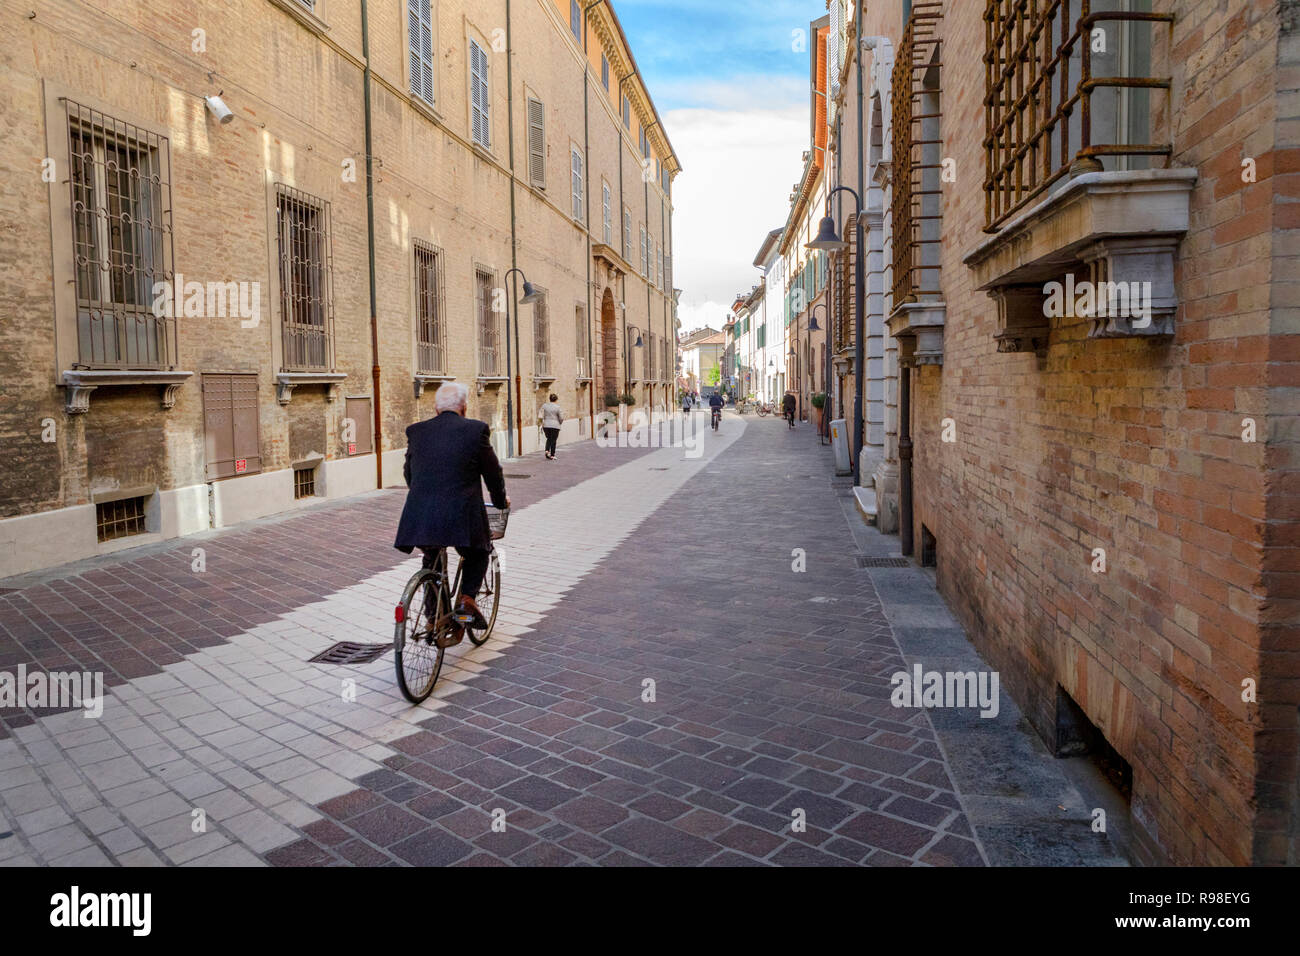 A cyclist in Ravenna, Italy - Stock Image